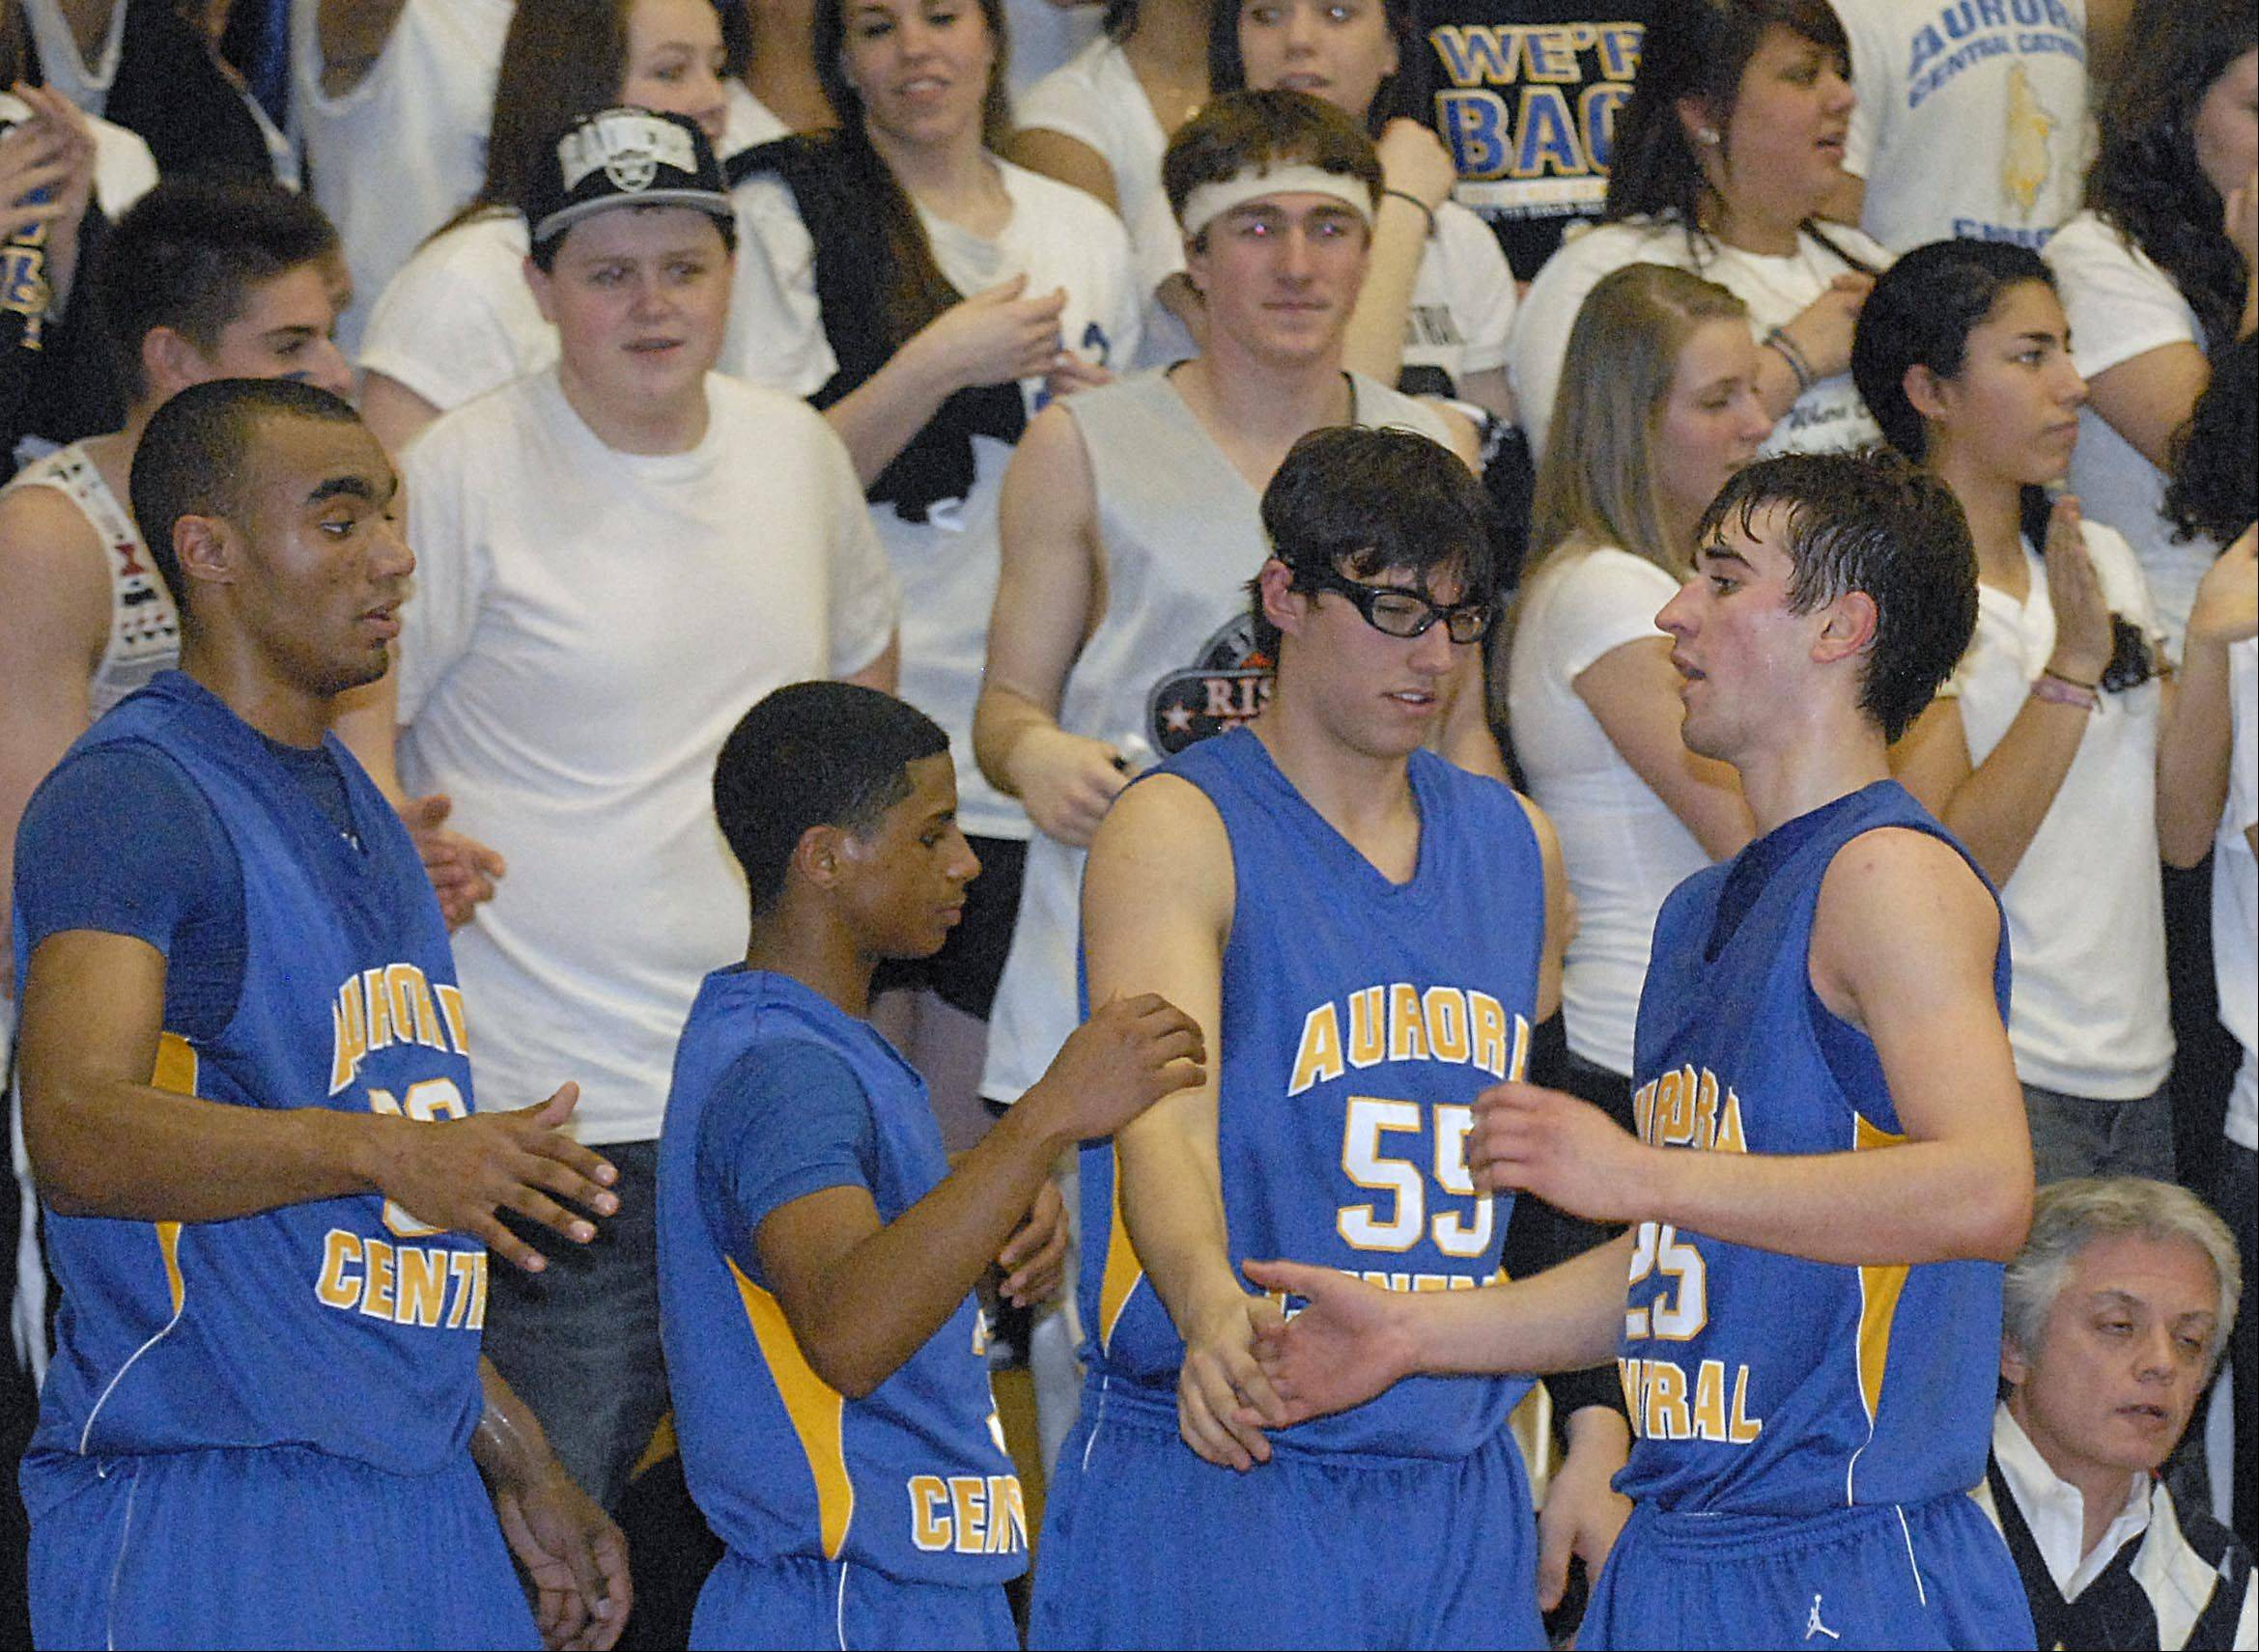 Images from the Aurora Central vs. Johnsburg boys sectional basketball game Wednesday, March 7, 2012.